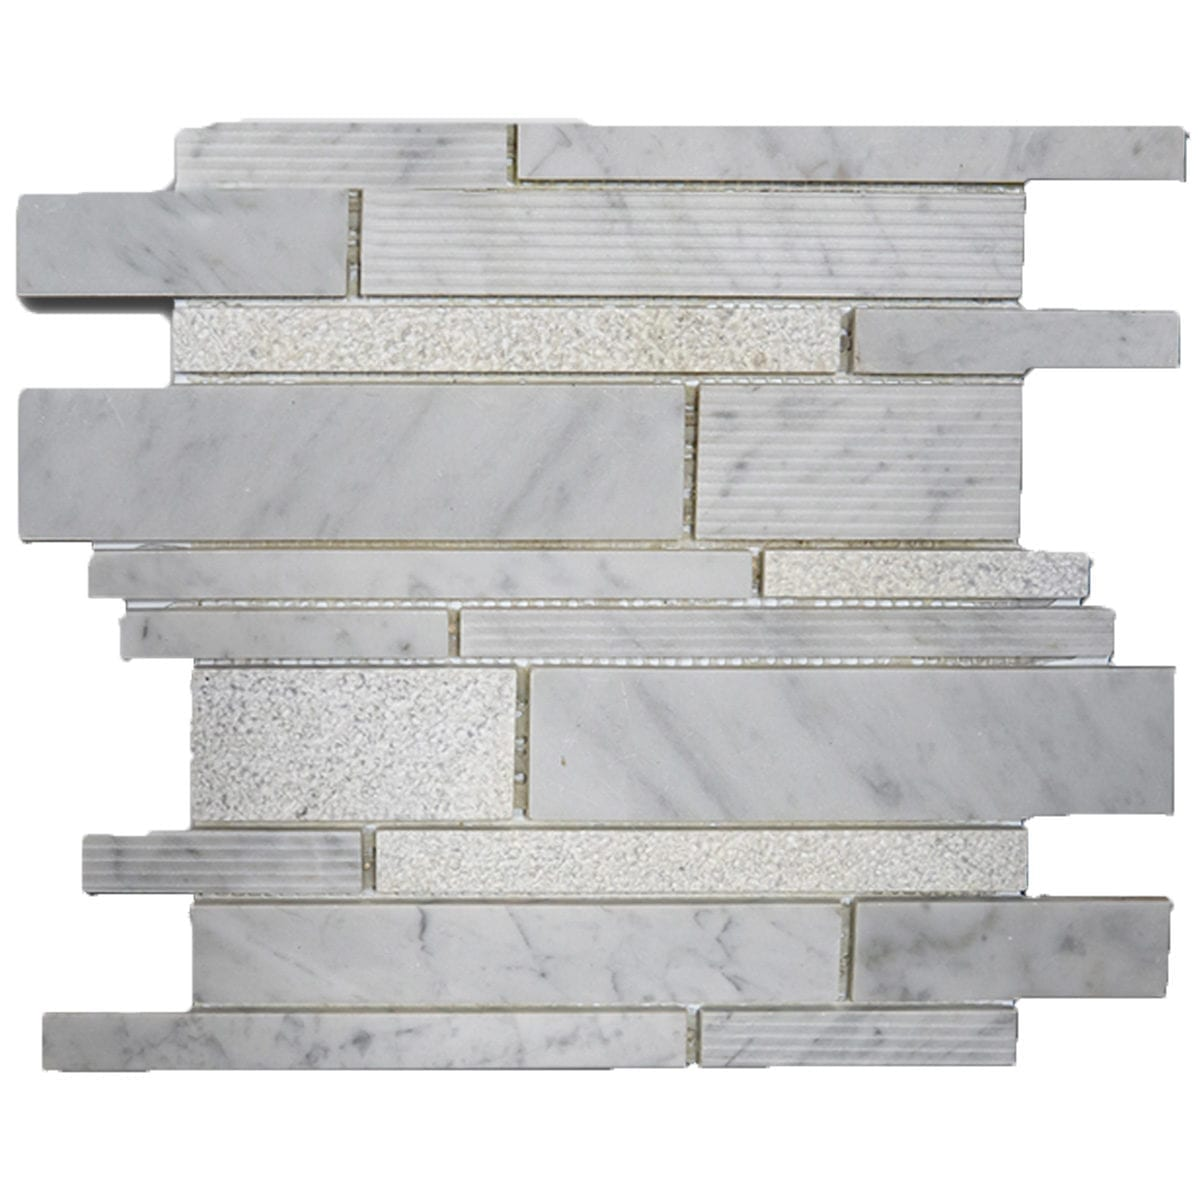 Normand carrara white